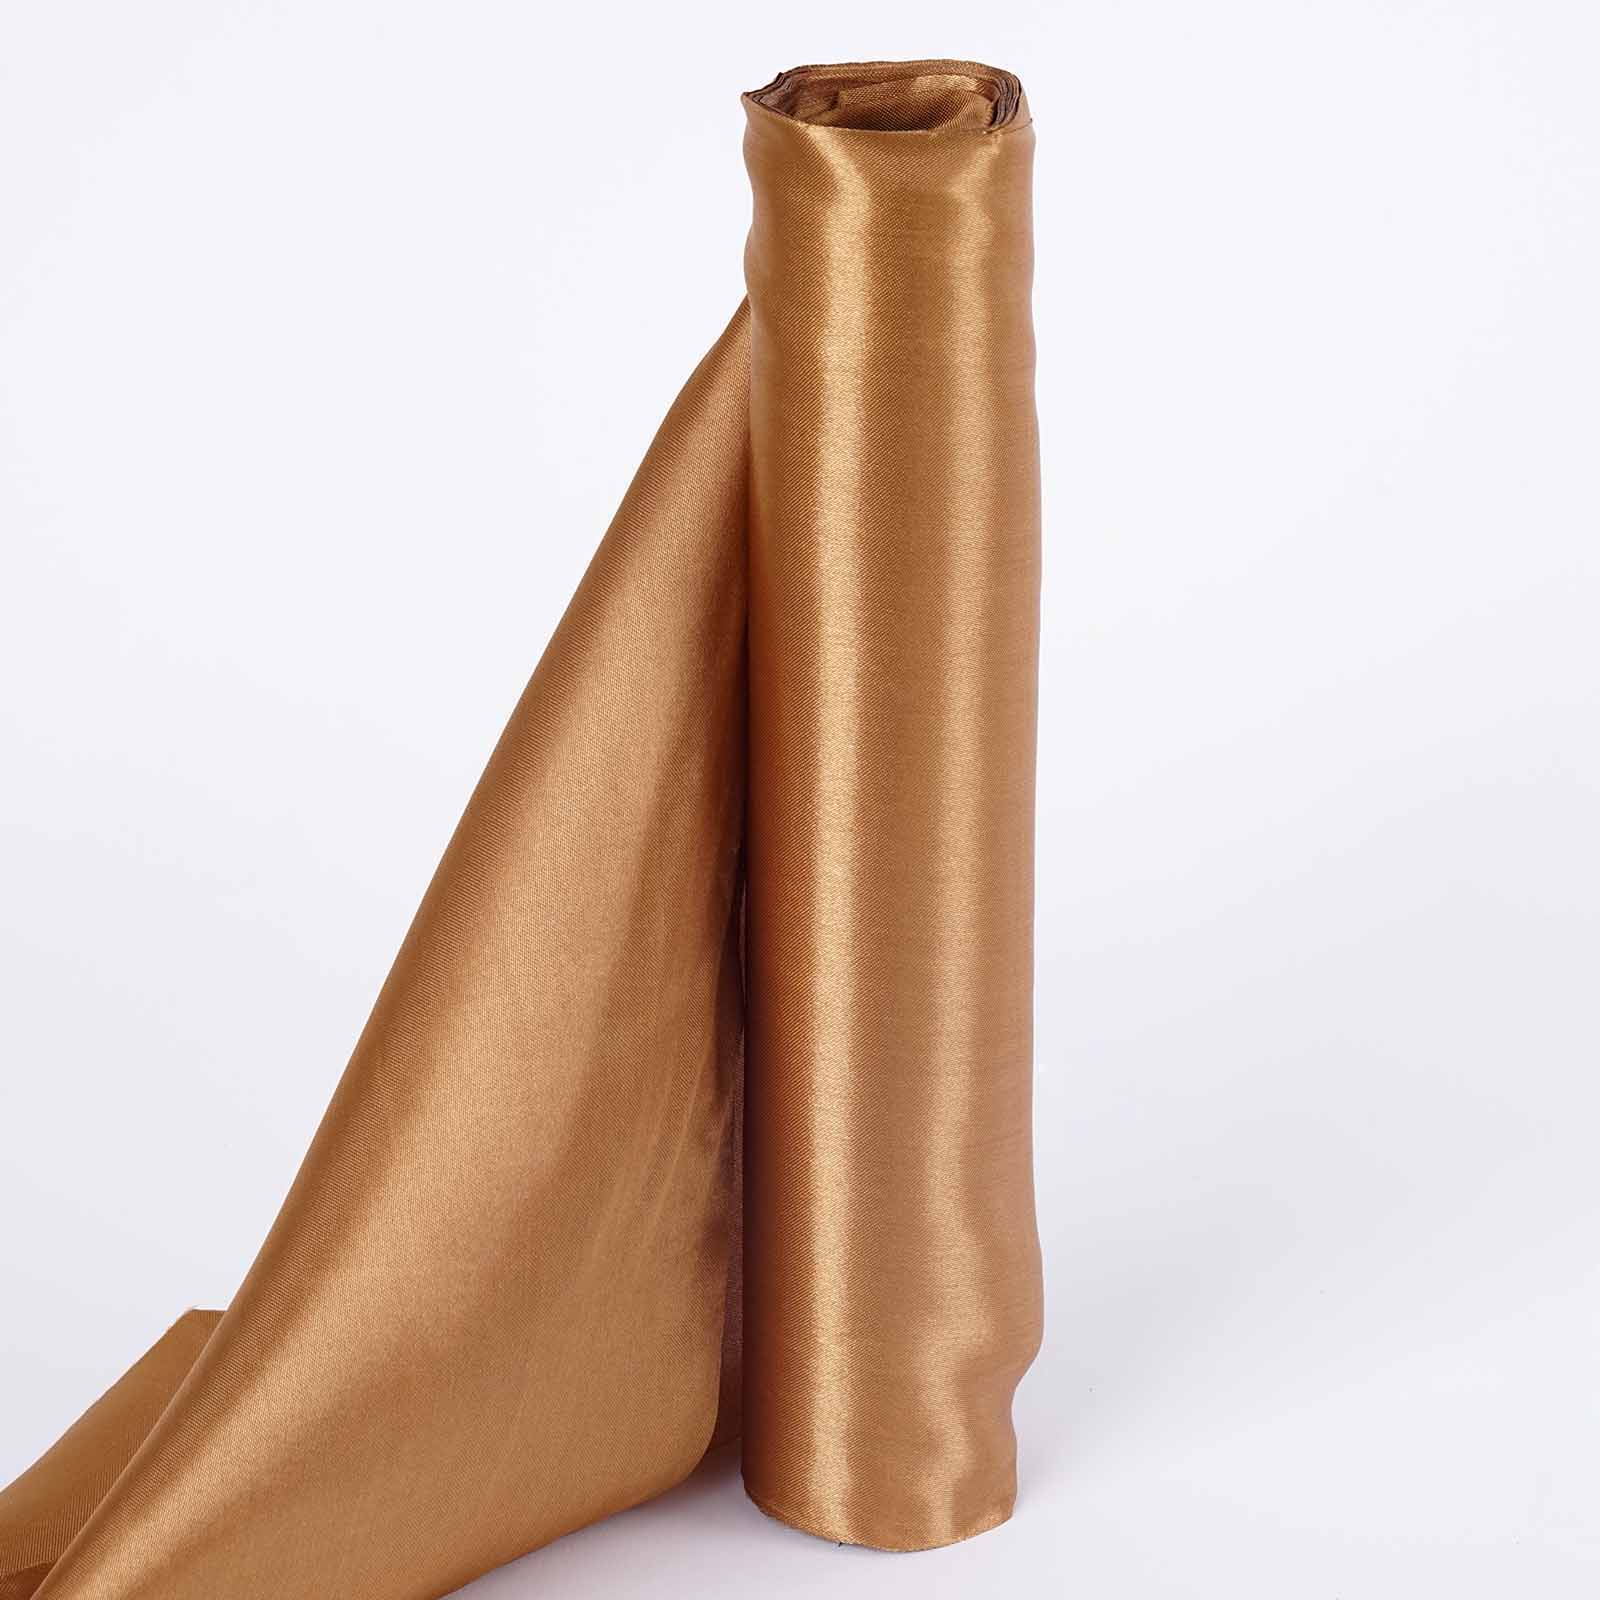 """BalsaCircle 12"""" x 10 yards Satin Put-up Fabric by the Bolt - Crafts Sewing Wedding Party Draping DIY Decorations Wholesale"""